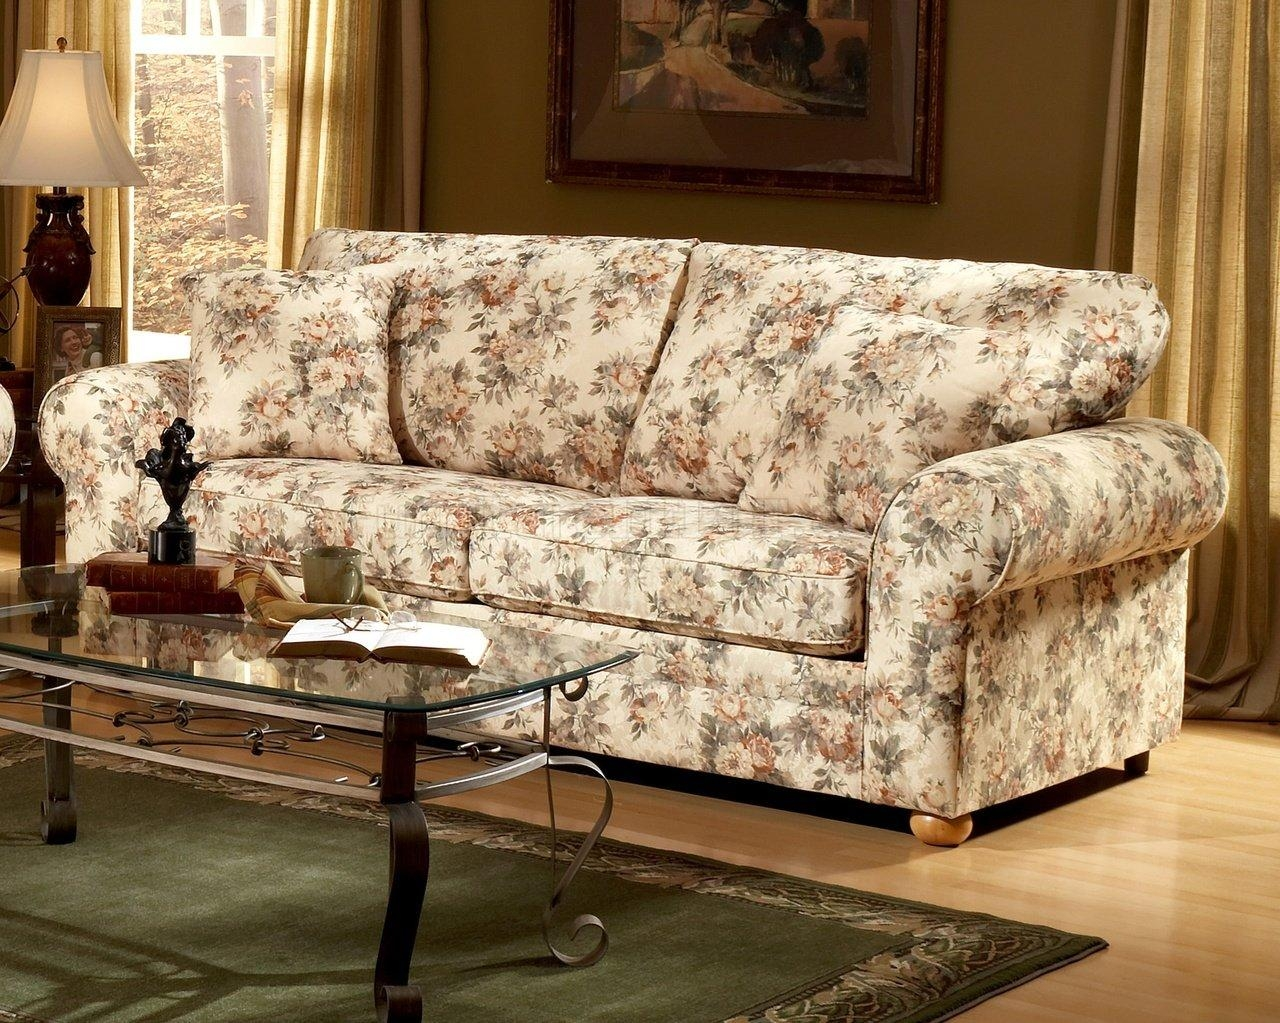 38 Patterned Sofa, Sofa Slips Plus Slipcovered Couches Slip Intended For Chintz Floral Sofas (View 4 of 22)